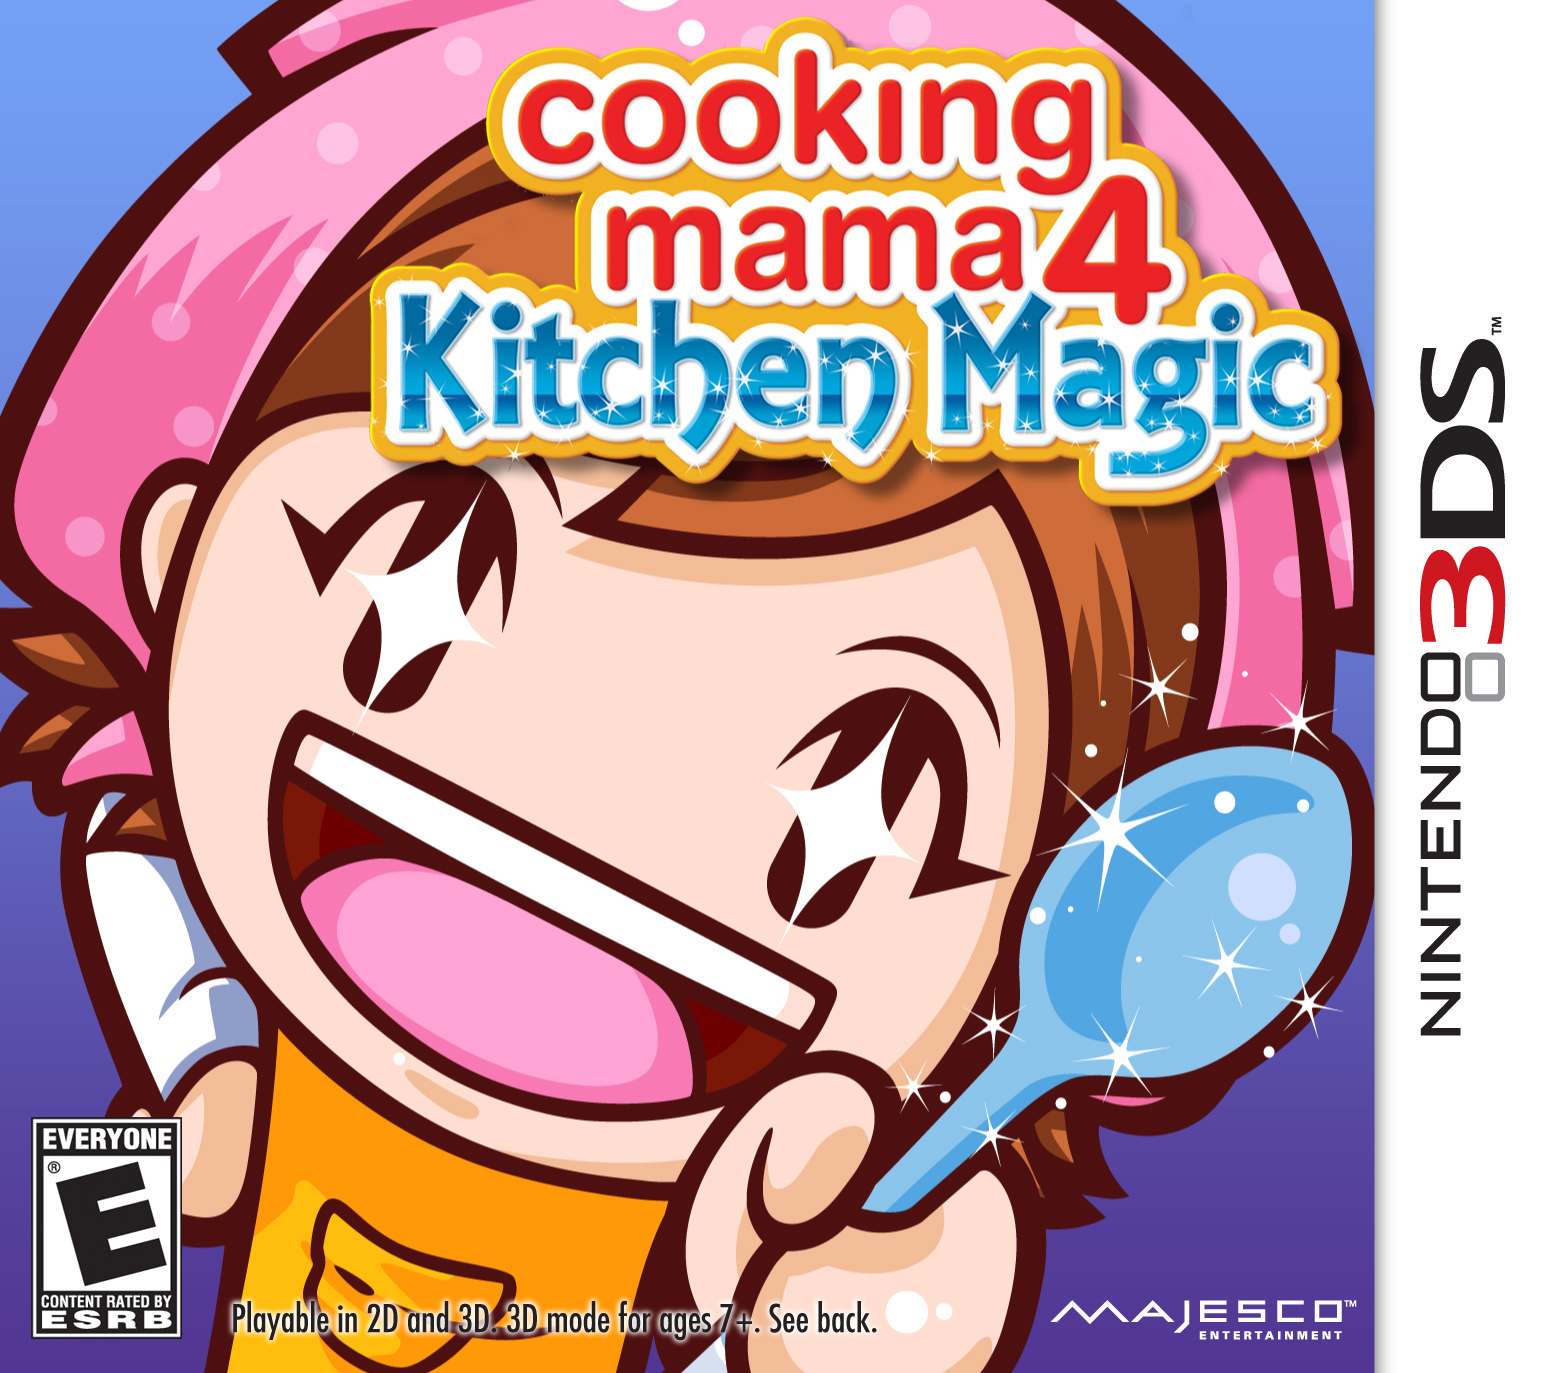 COOKING MAMA 4: KITCHEN MAGIC ...